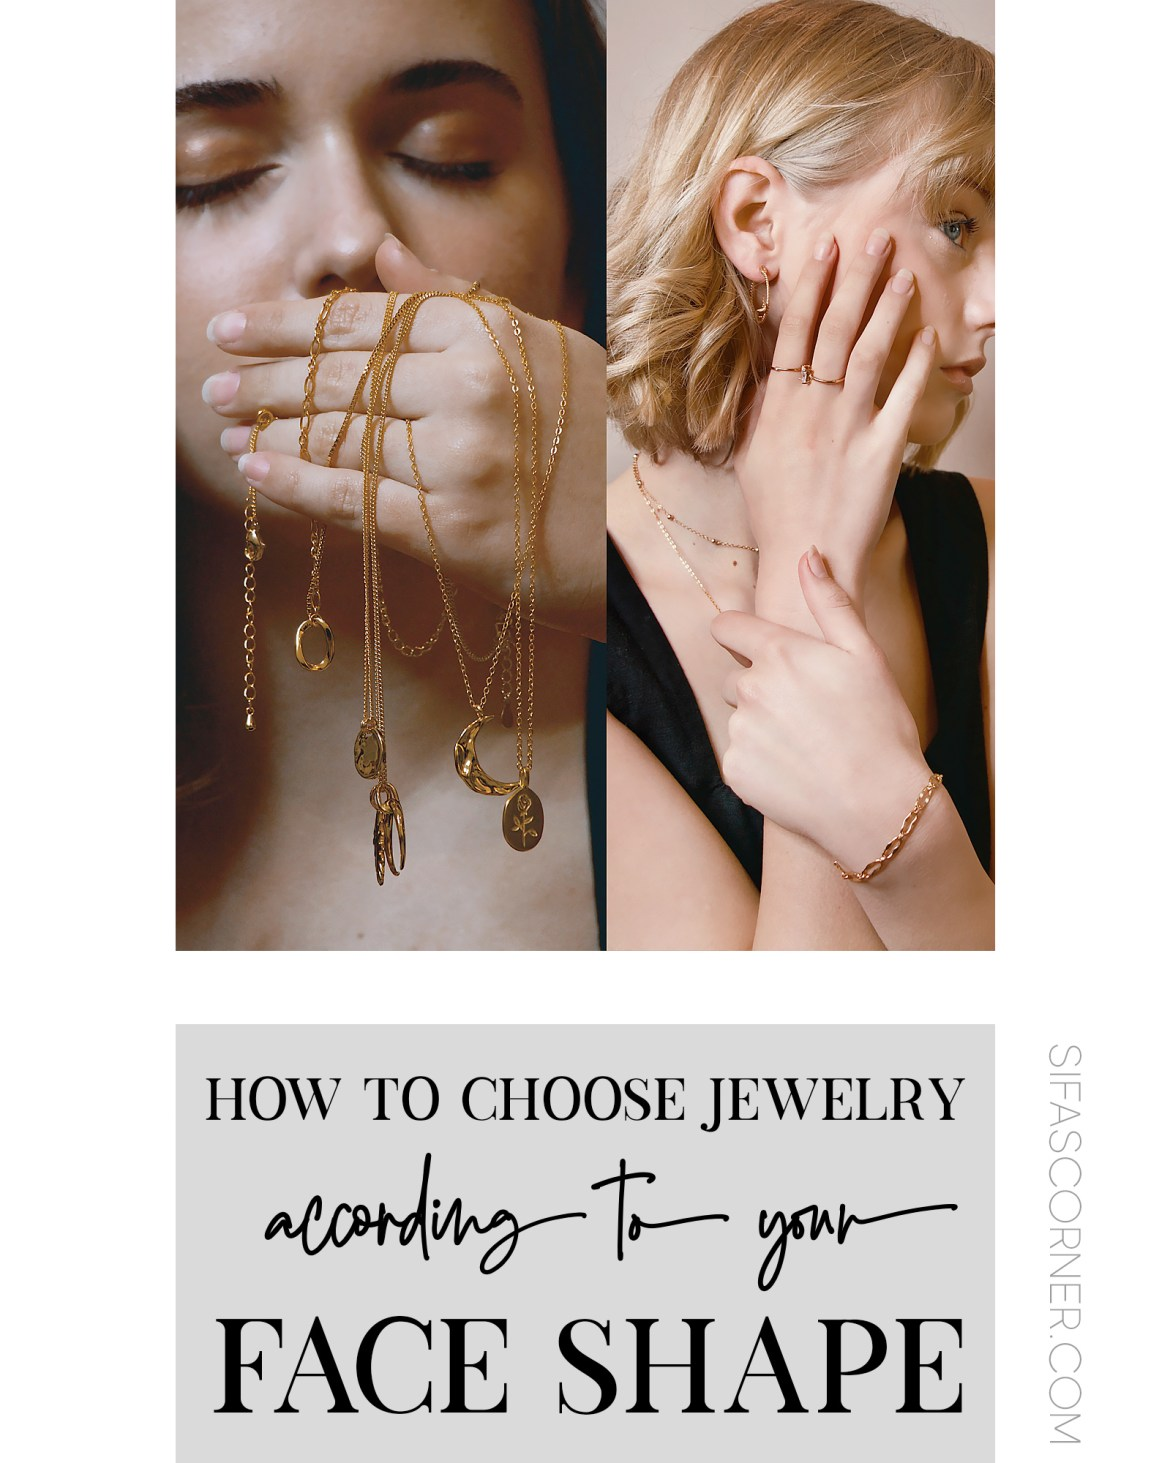 how to choose jewelry for face shape